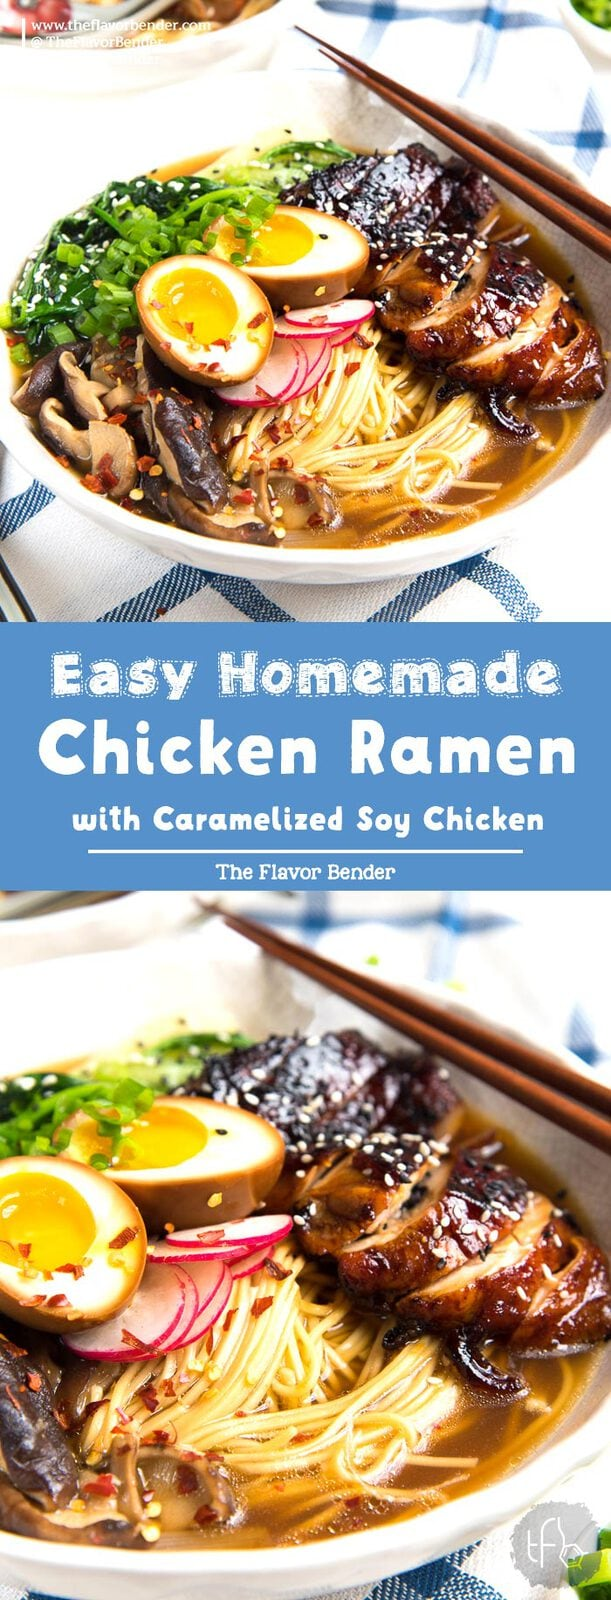 Easy Homemade Chicken Ramen - An incredibly flavorful Chicken ramen with authentic flavors, but easy to make for dinner! Topped with caramelized soy chicken and a ramen egg. Ready in about 30 minutes. #EasyChickenRamen #HomemadeChickenRamen #AsianRecipes #EasyDinner #AuthenticRamen